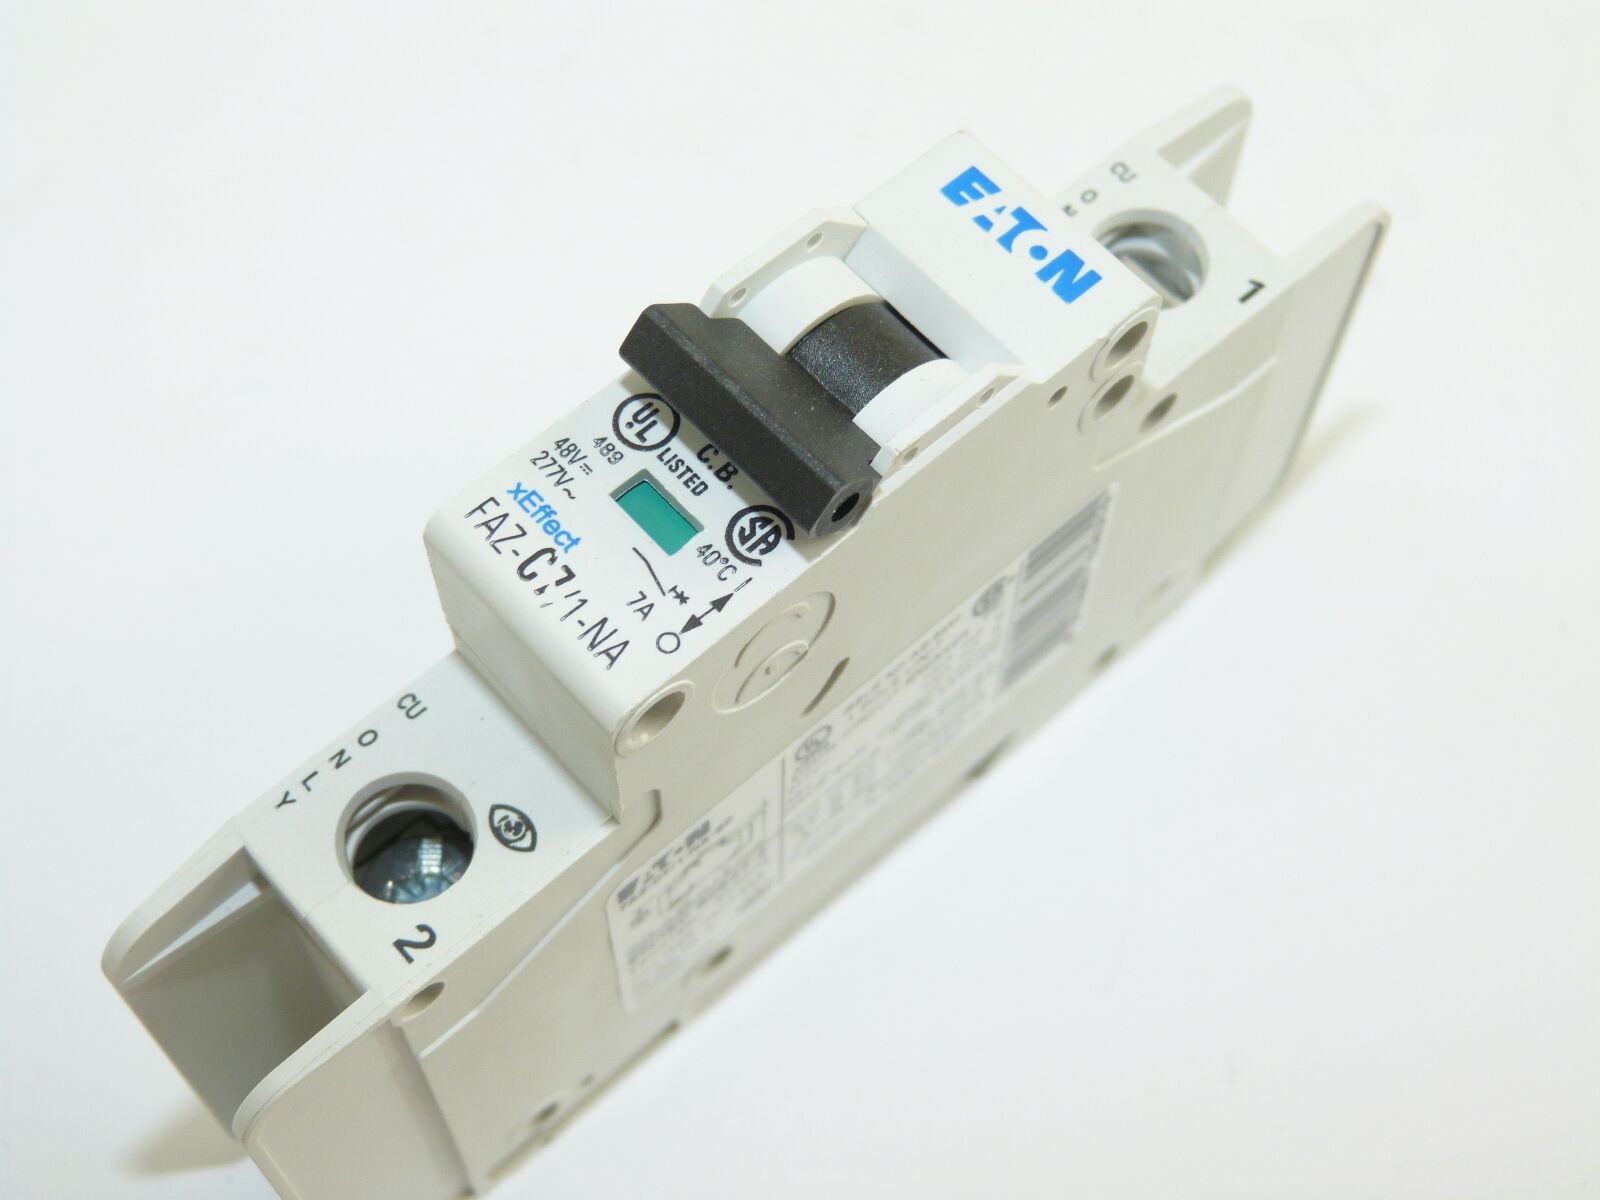 Faz Miniature Circuit Breakers Eaton Cutler Hammer C7 1 Na Sp 1p 7a 277v Breaker New Of 1only Available